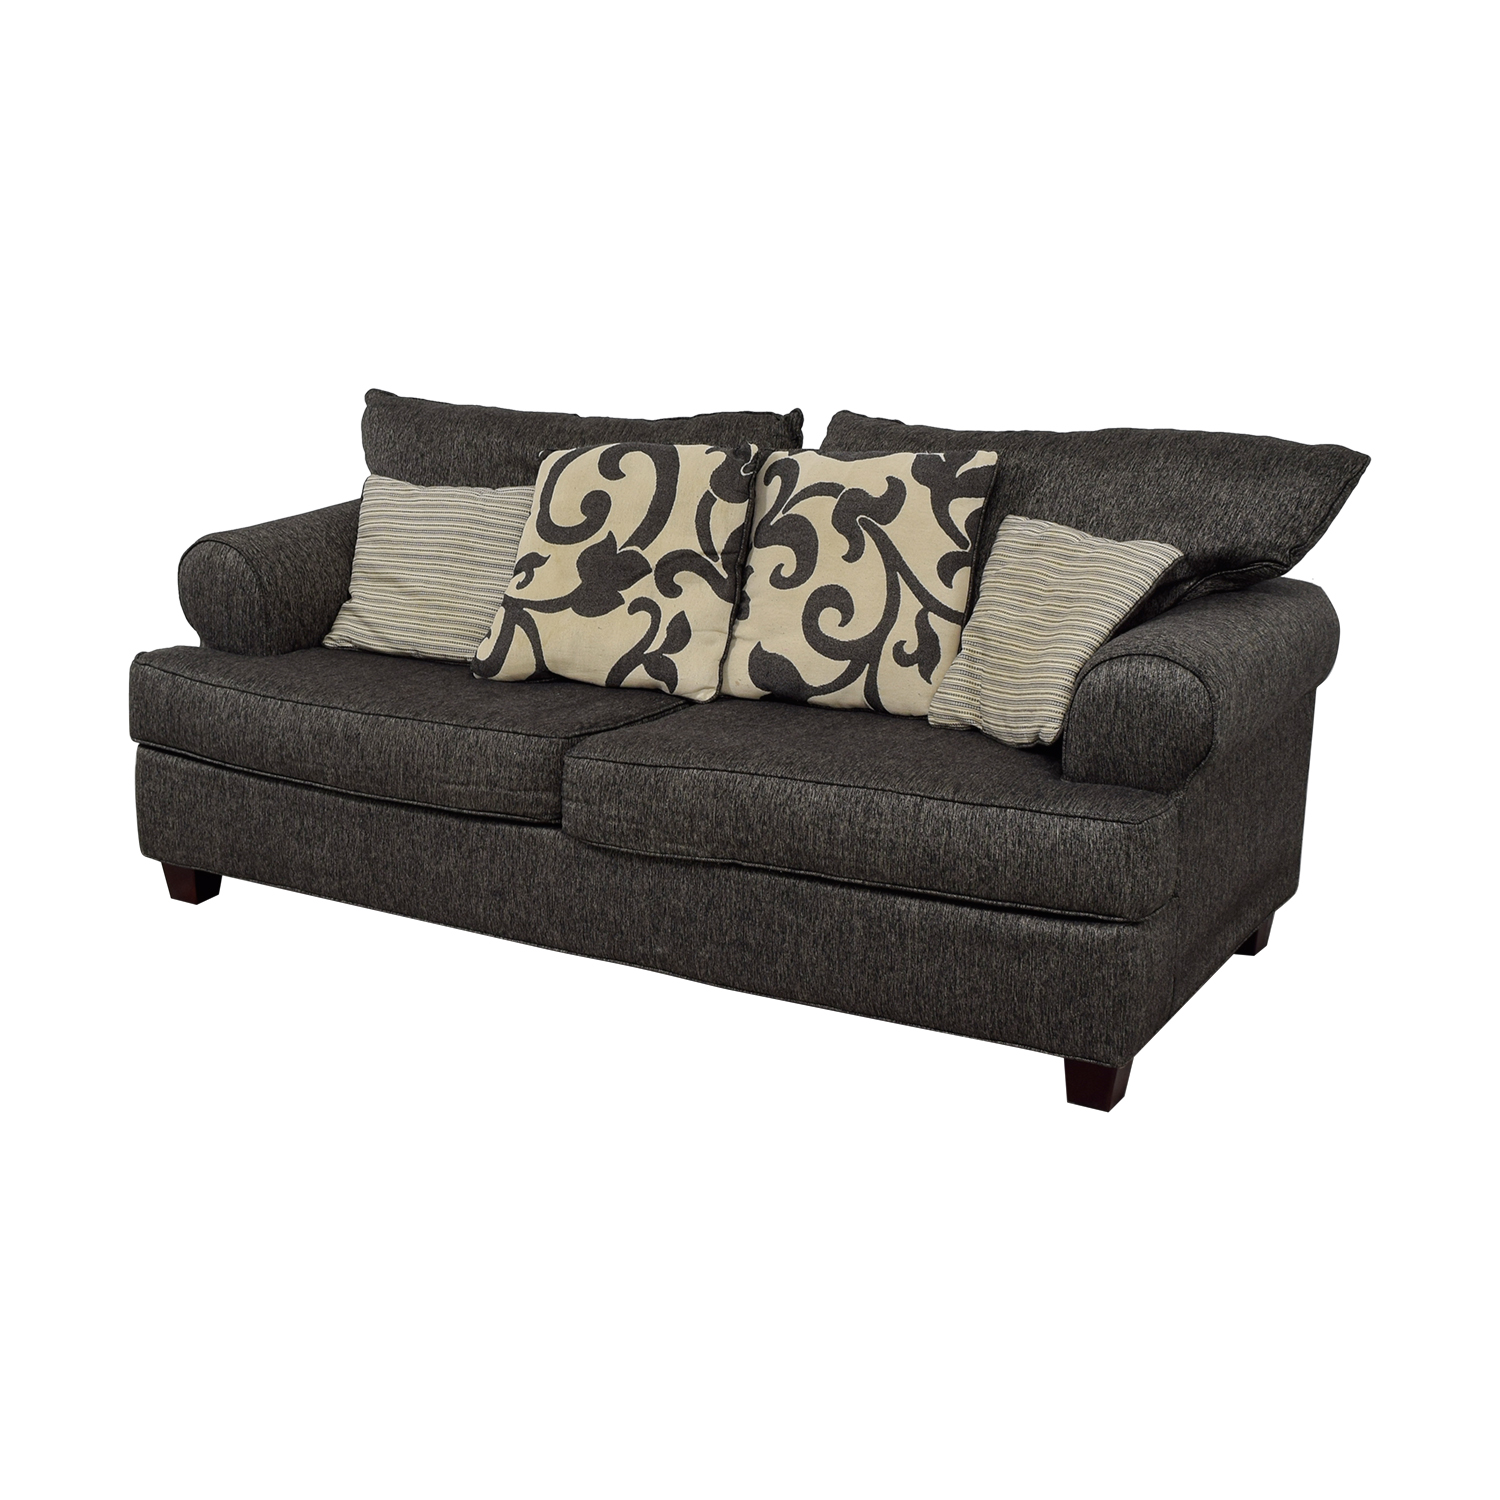 Bob's Furniture Bob's Furniture Big Grey Two-Seater Sofa coupon